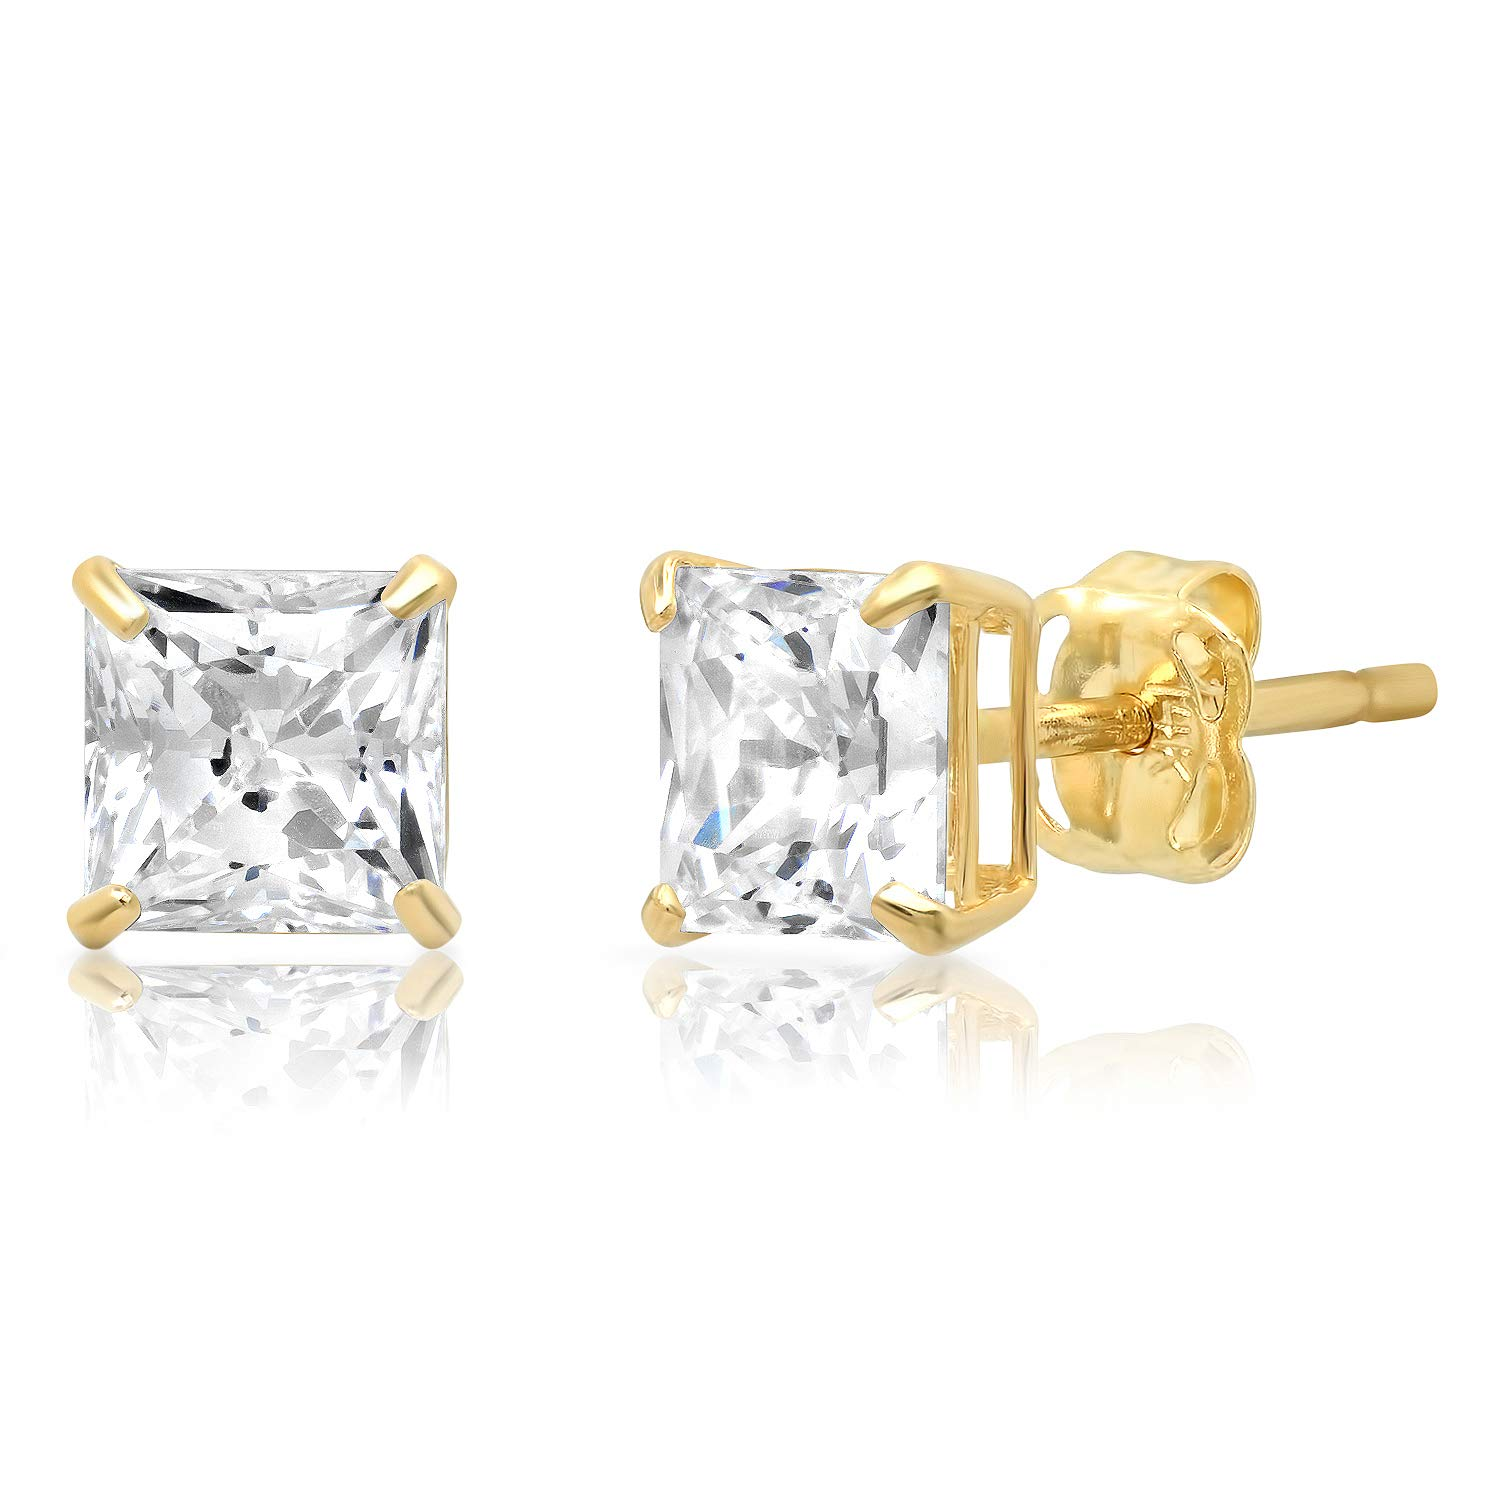 14k Solid Yellow Gold PRINCESS Stud Earrings with Genuine Swarovski Zirconia | 1.5 CT.TW. | With Gift Box by Parade of Jewels (Image #1)